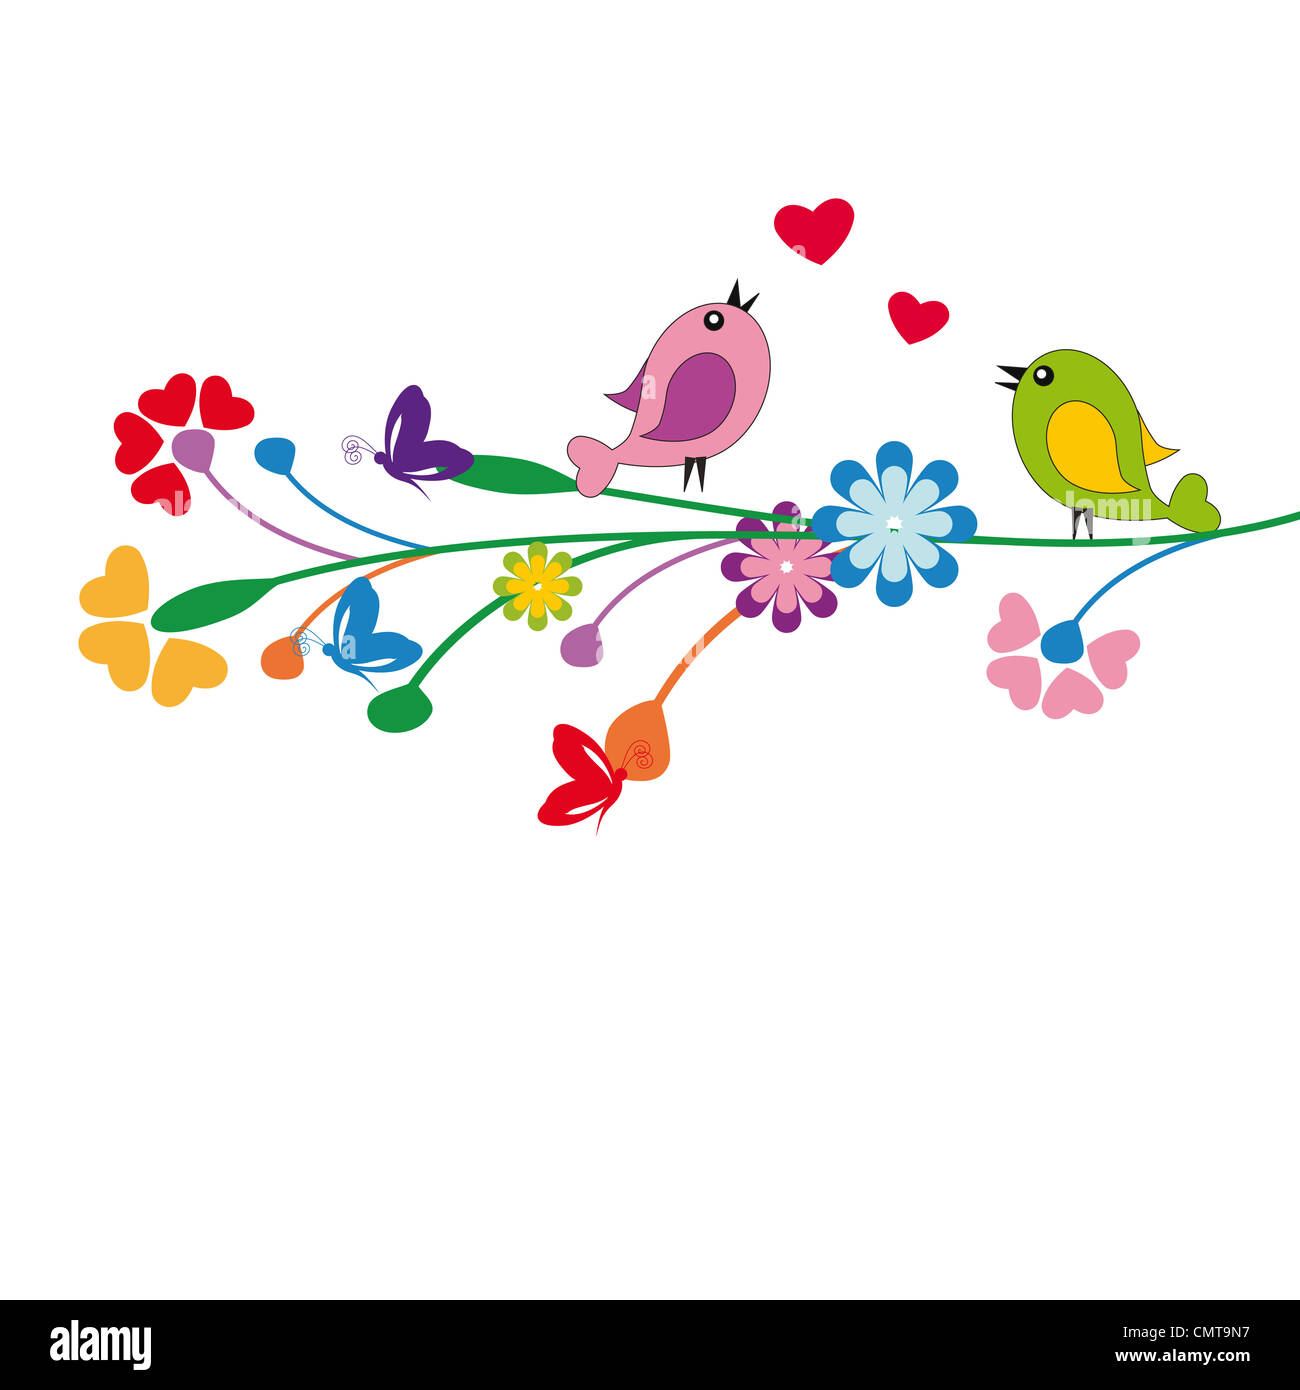 Cute kids cartoon with flowers and birds - Stock Image